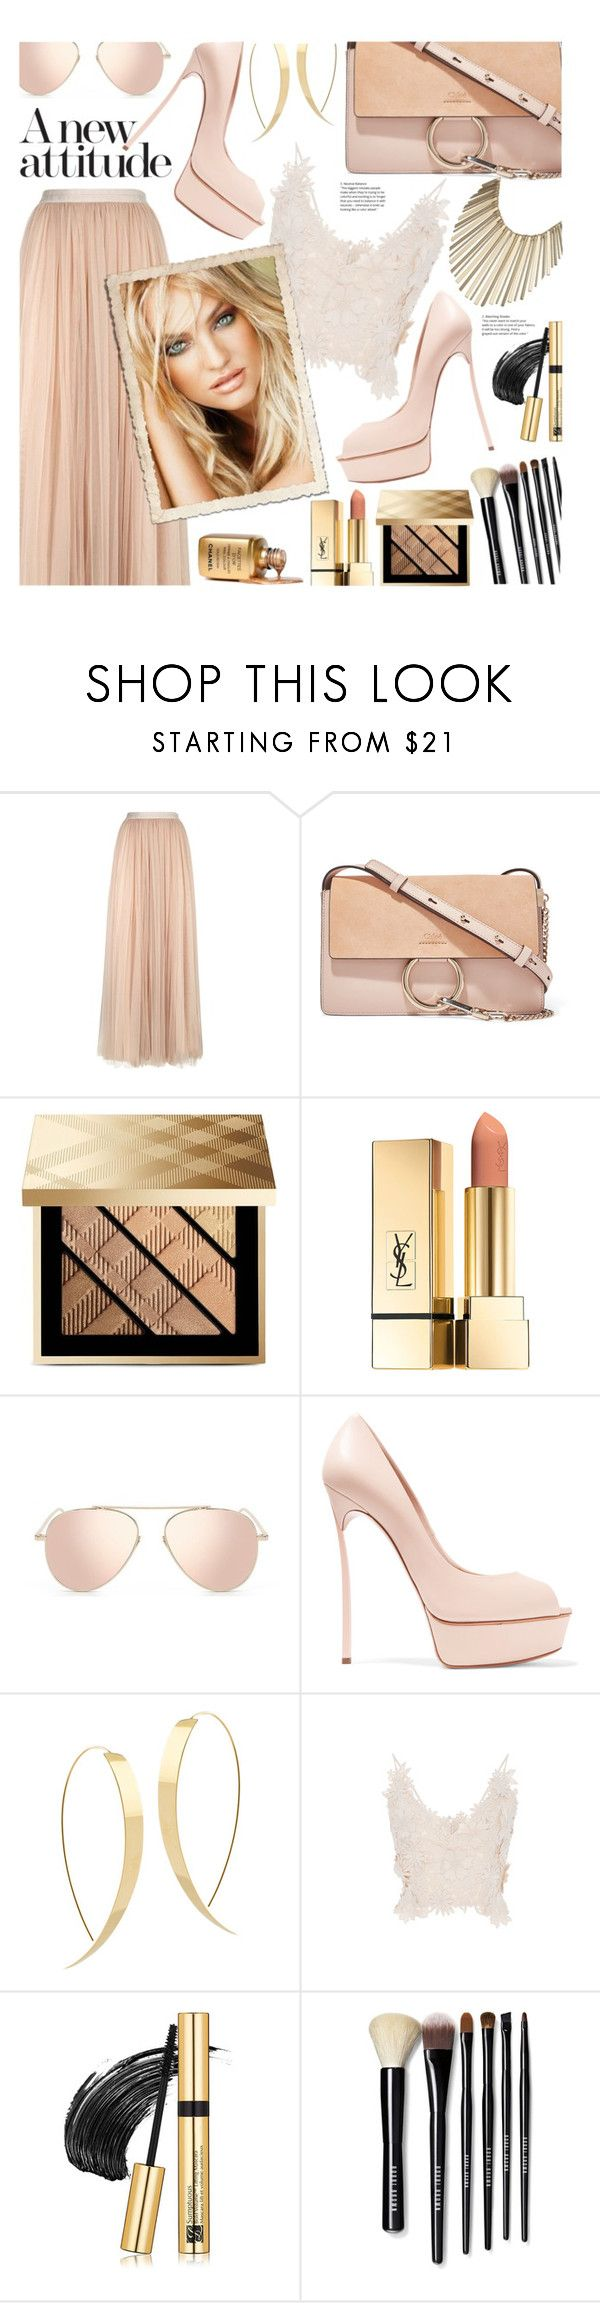 """Attitude!"" by ela79 ❤ liked on Polyvore featuring Needle & Thread, Chloé, Burberry, PUR, Casadei, Lana, Johanna Ortiz, Estée Lauder, Bobbi Brown Cosmetics and Jennifer Lopez"